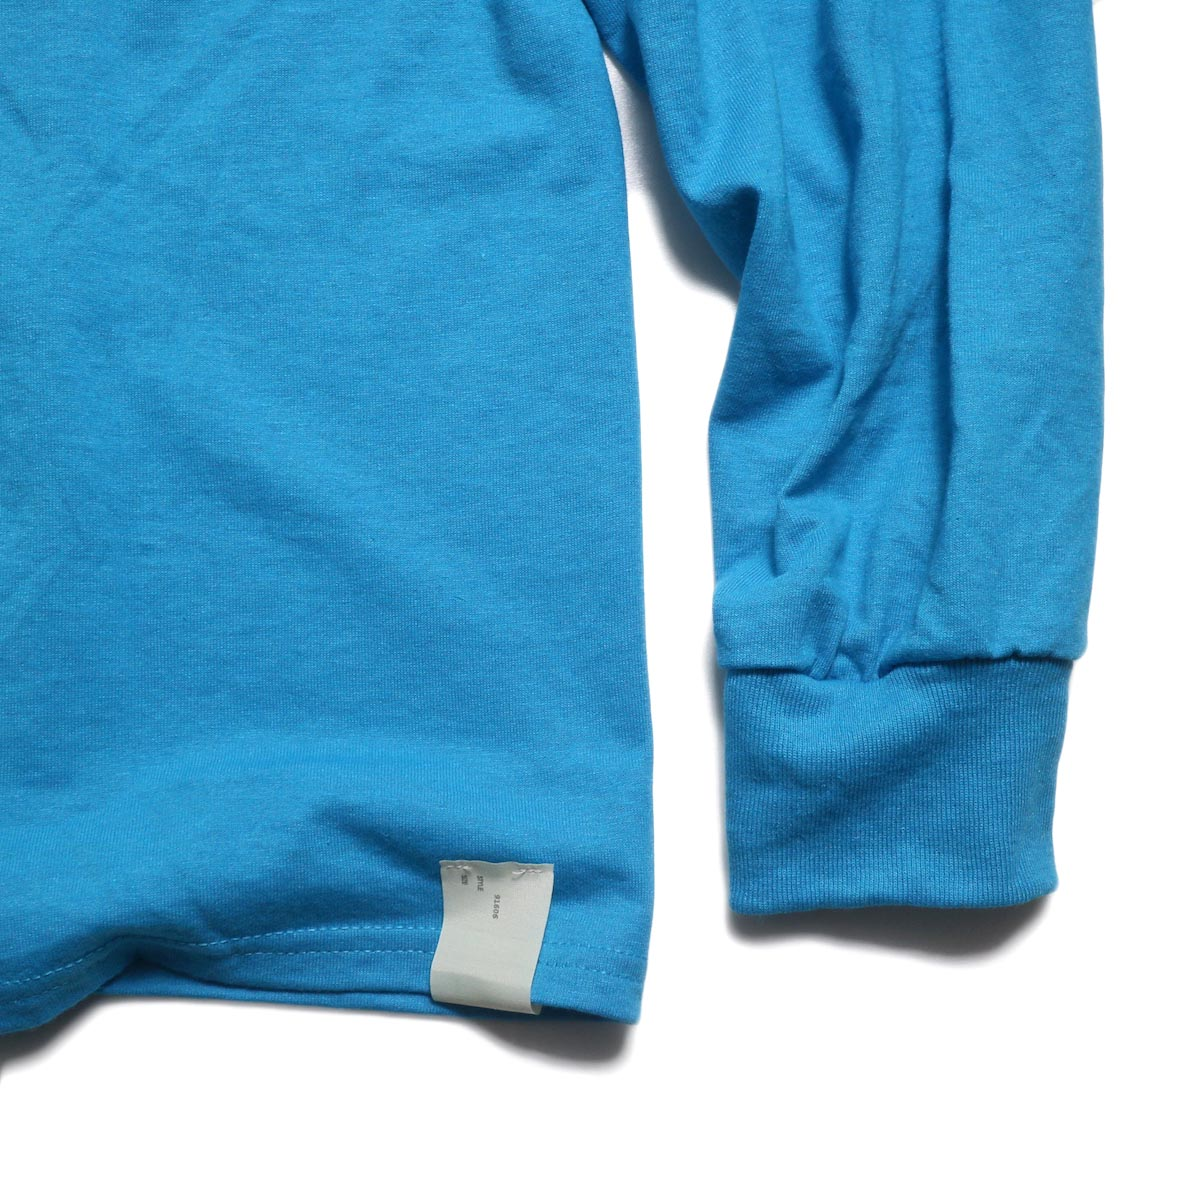 N.HOOLYWOOD × JERZEES  / 191-CS43-070 Long Sleeve Tee -Blue タグ